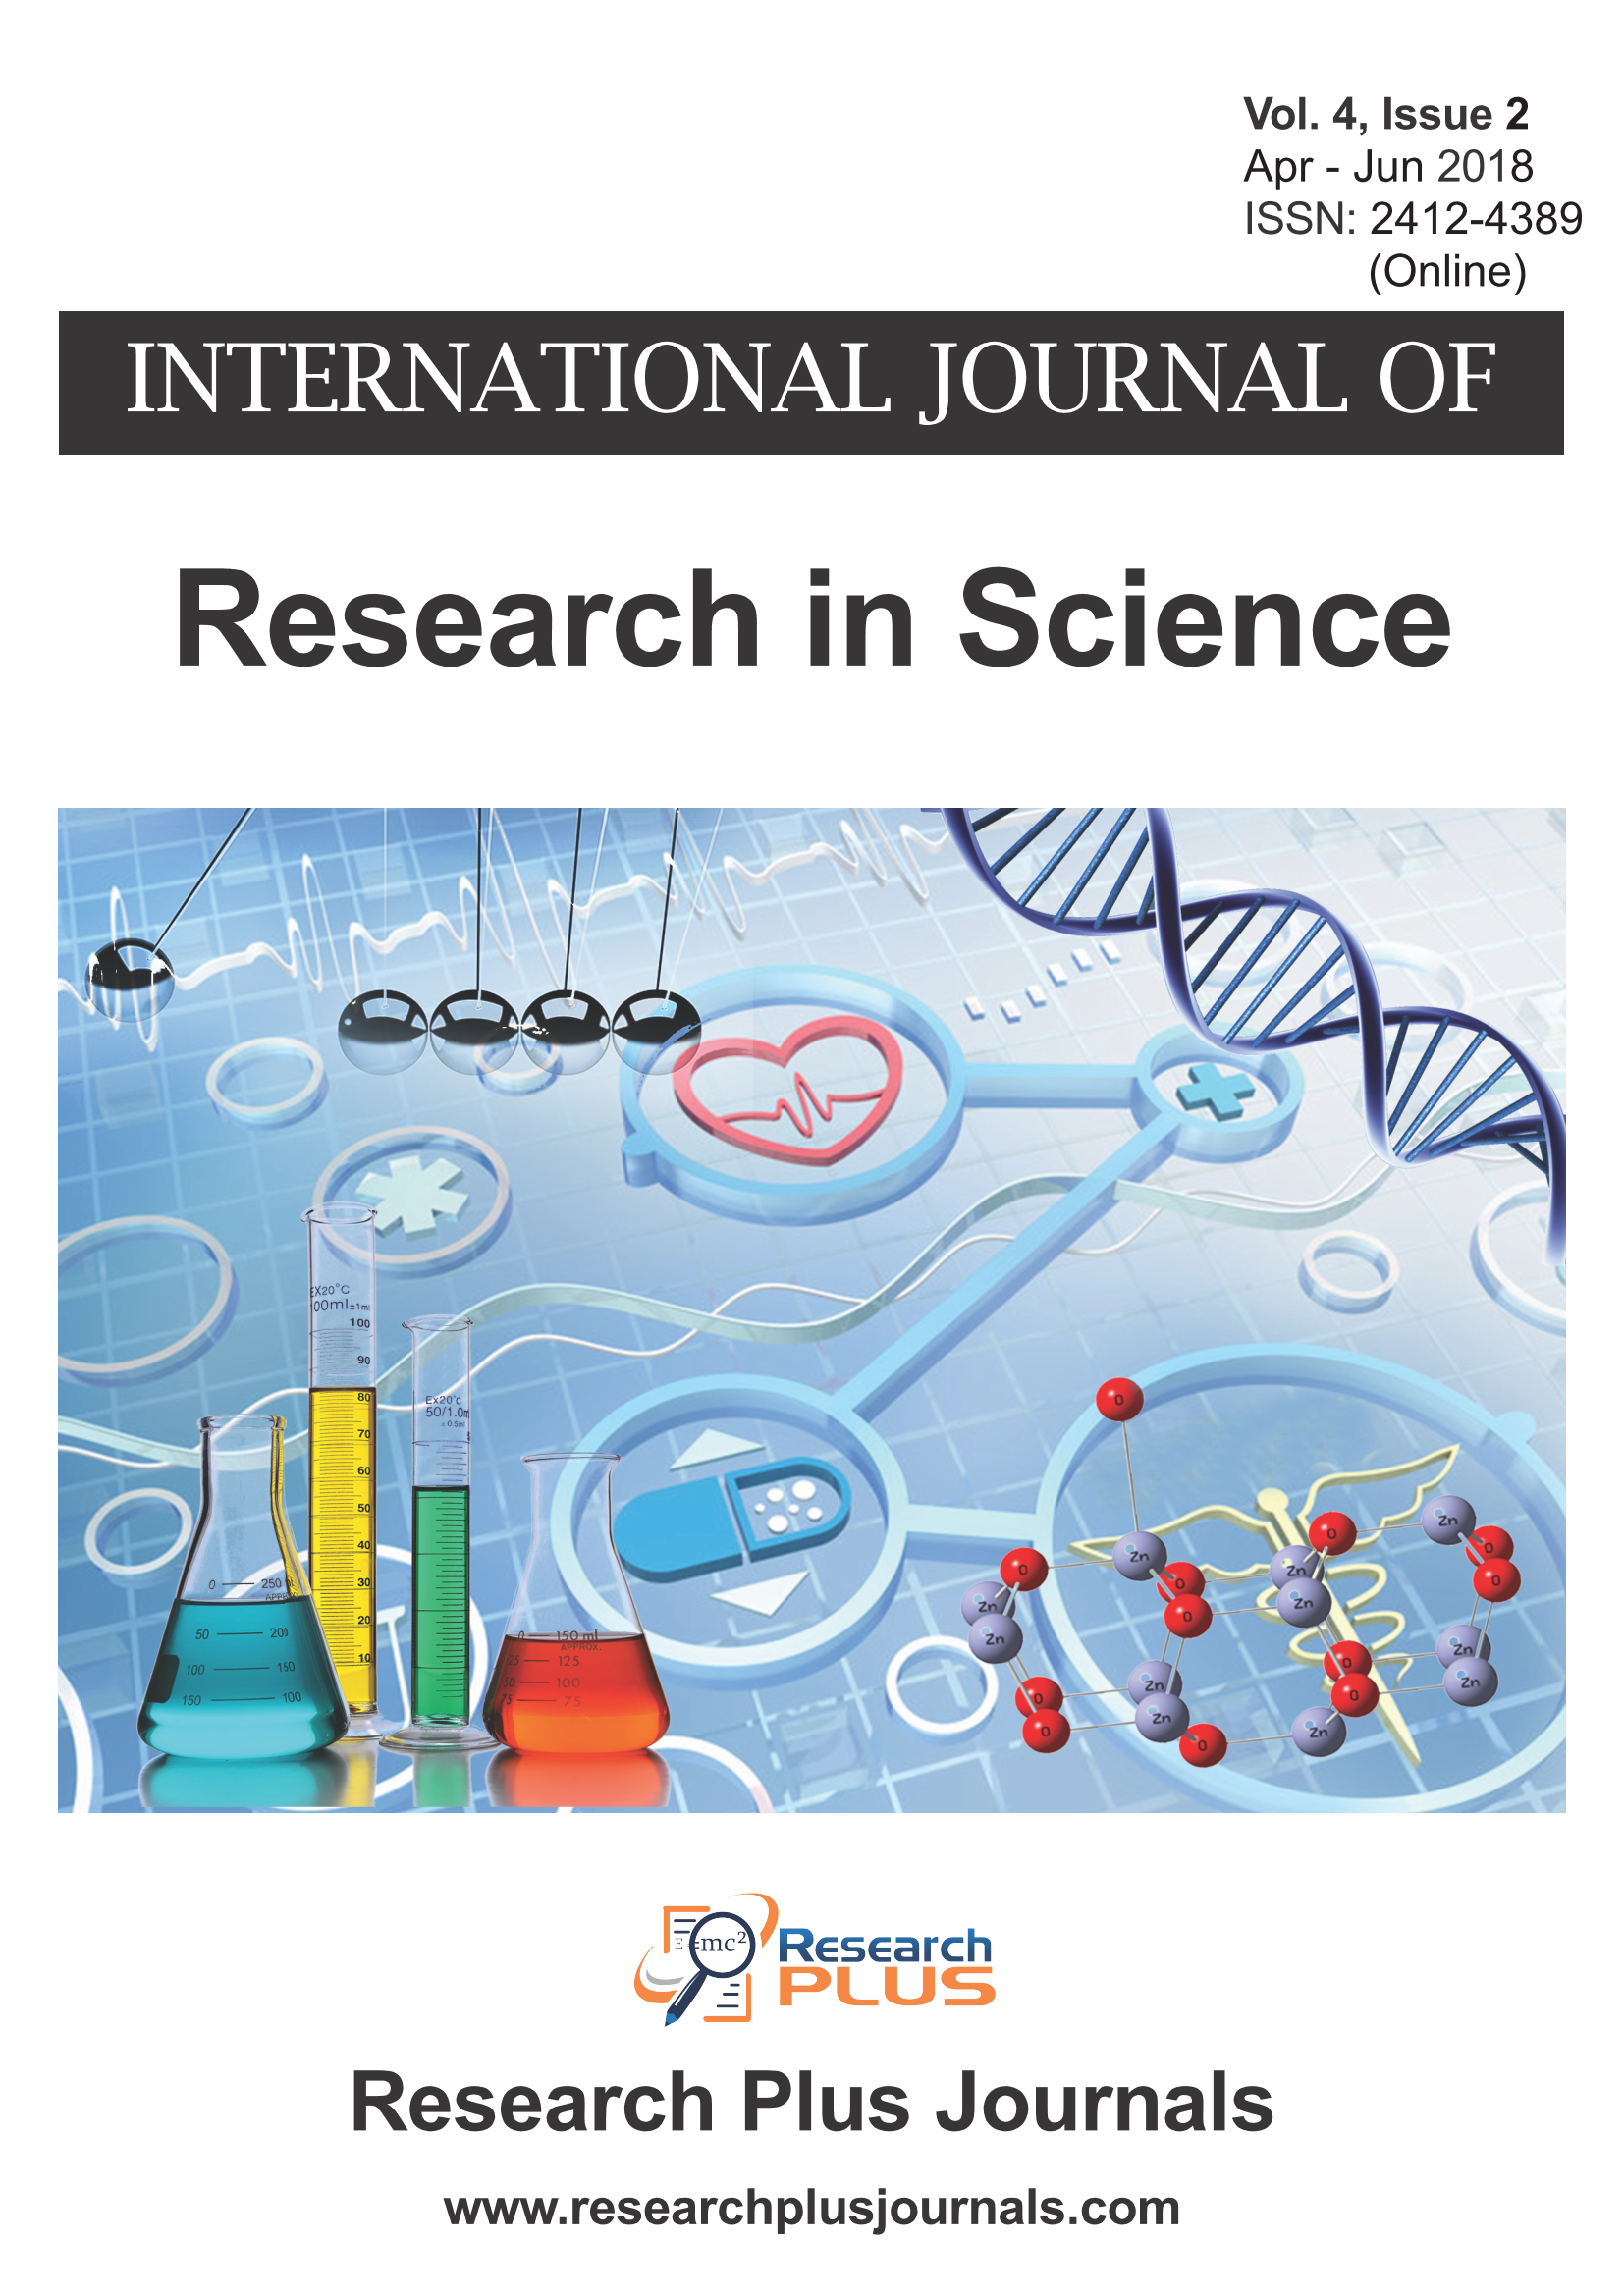 Volume 4, Issue 2, International Journal of Research in Science (IJRS) (Online ISSN 2412-4389)